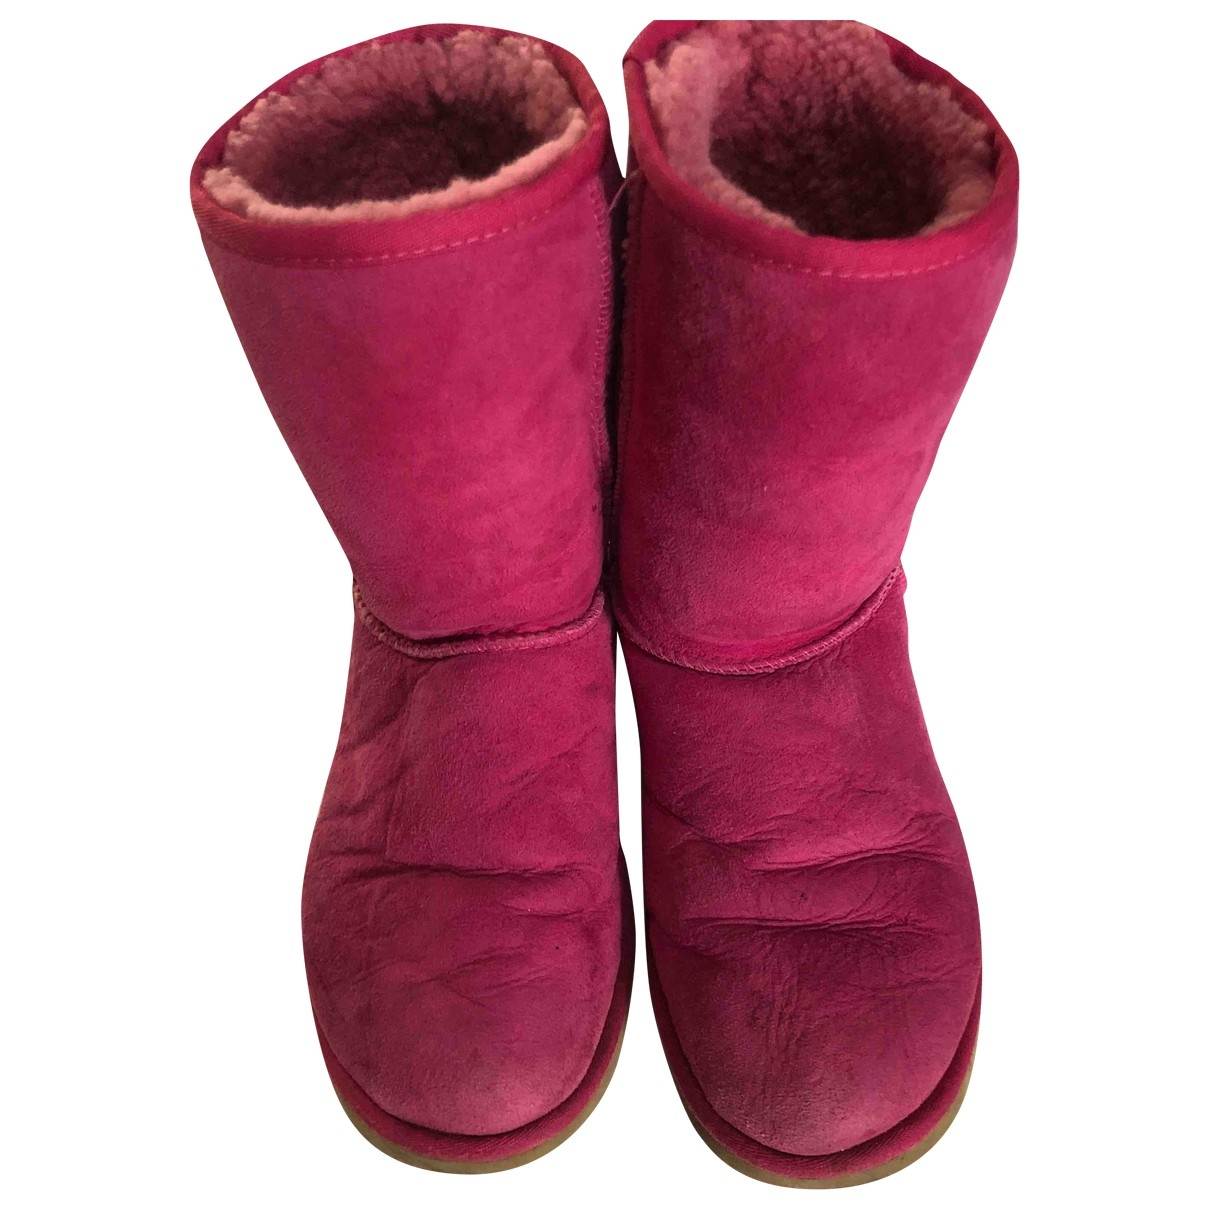 Ugg \N Pink Suede Boots for Women 40 EU